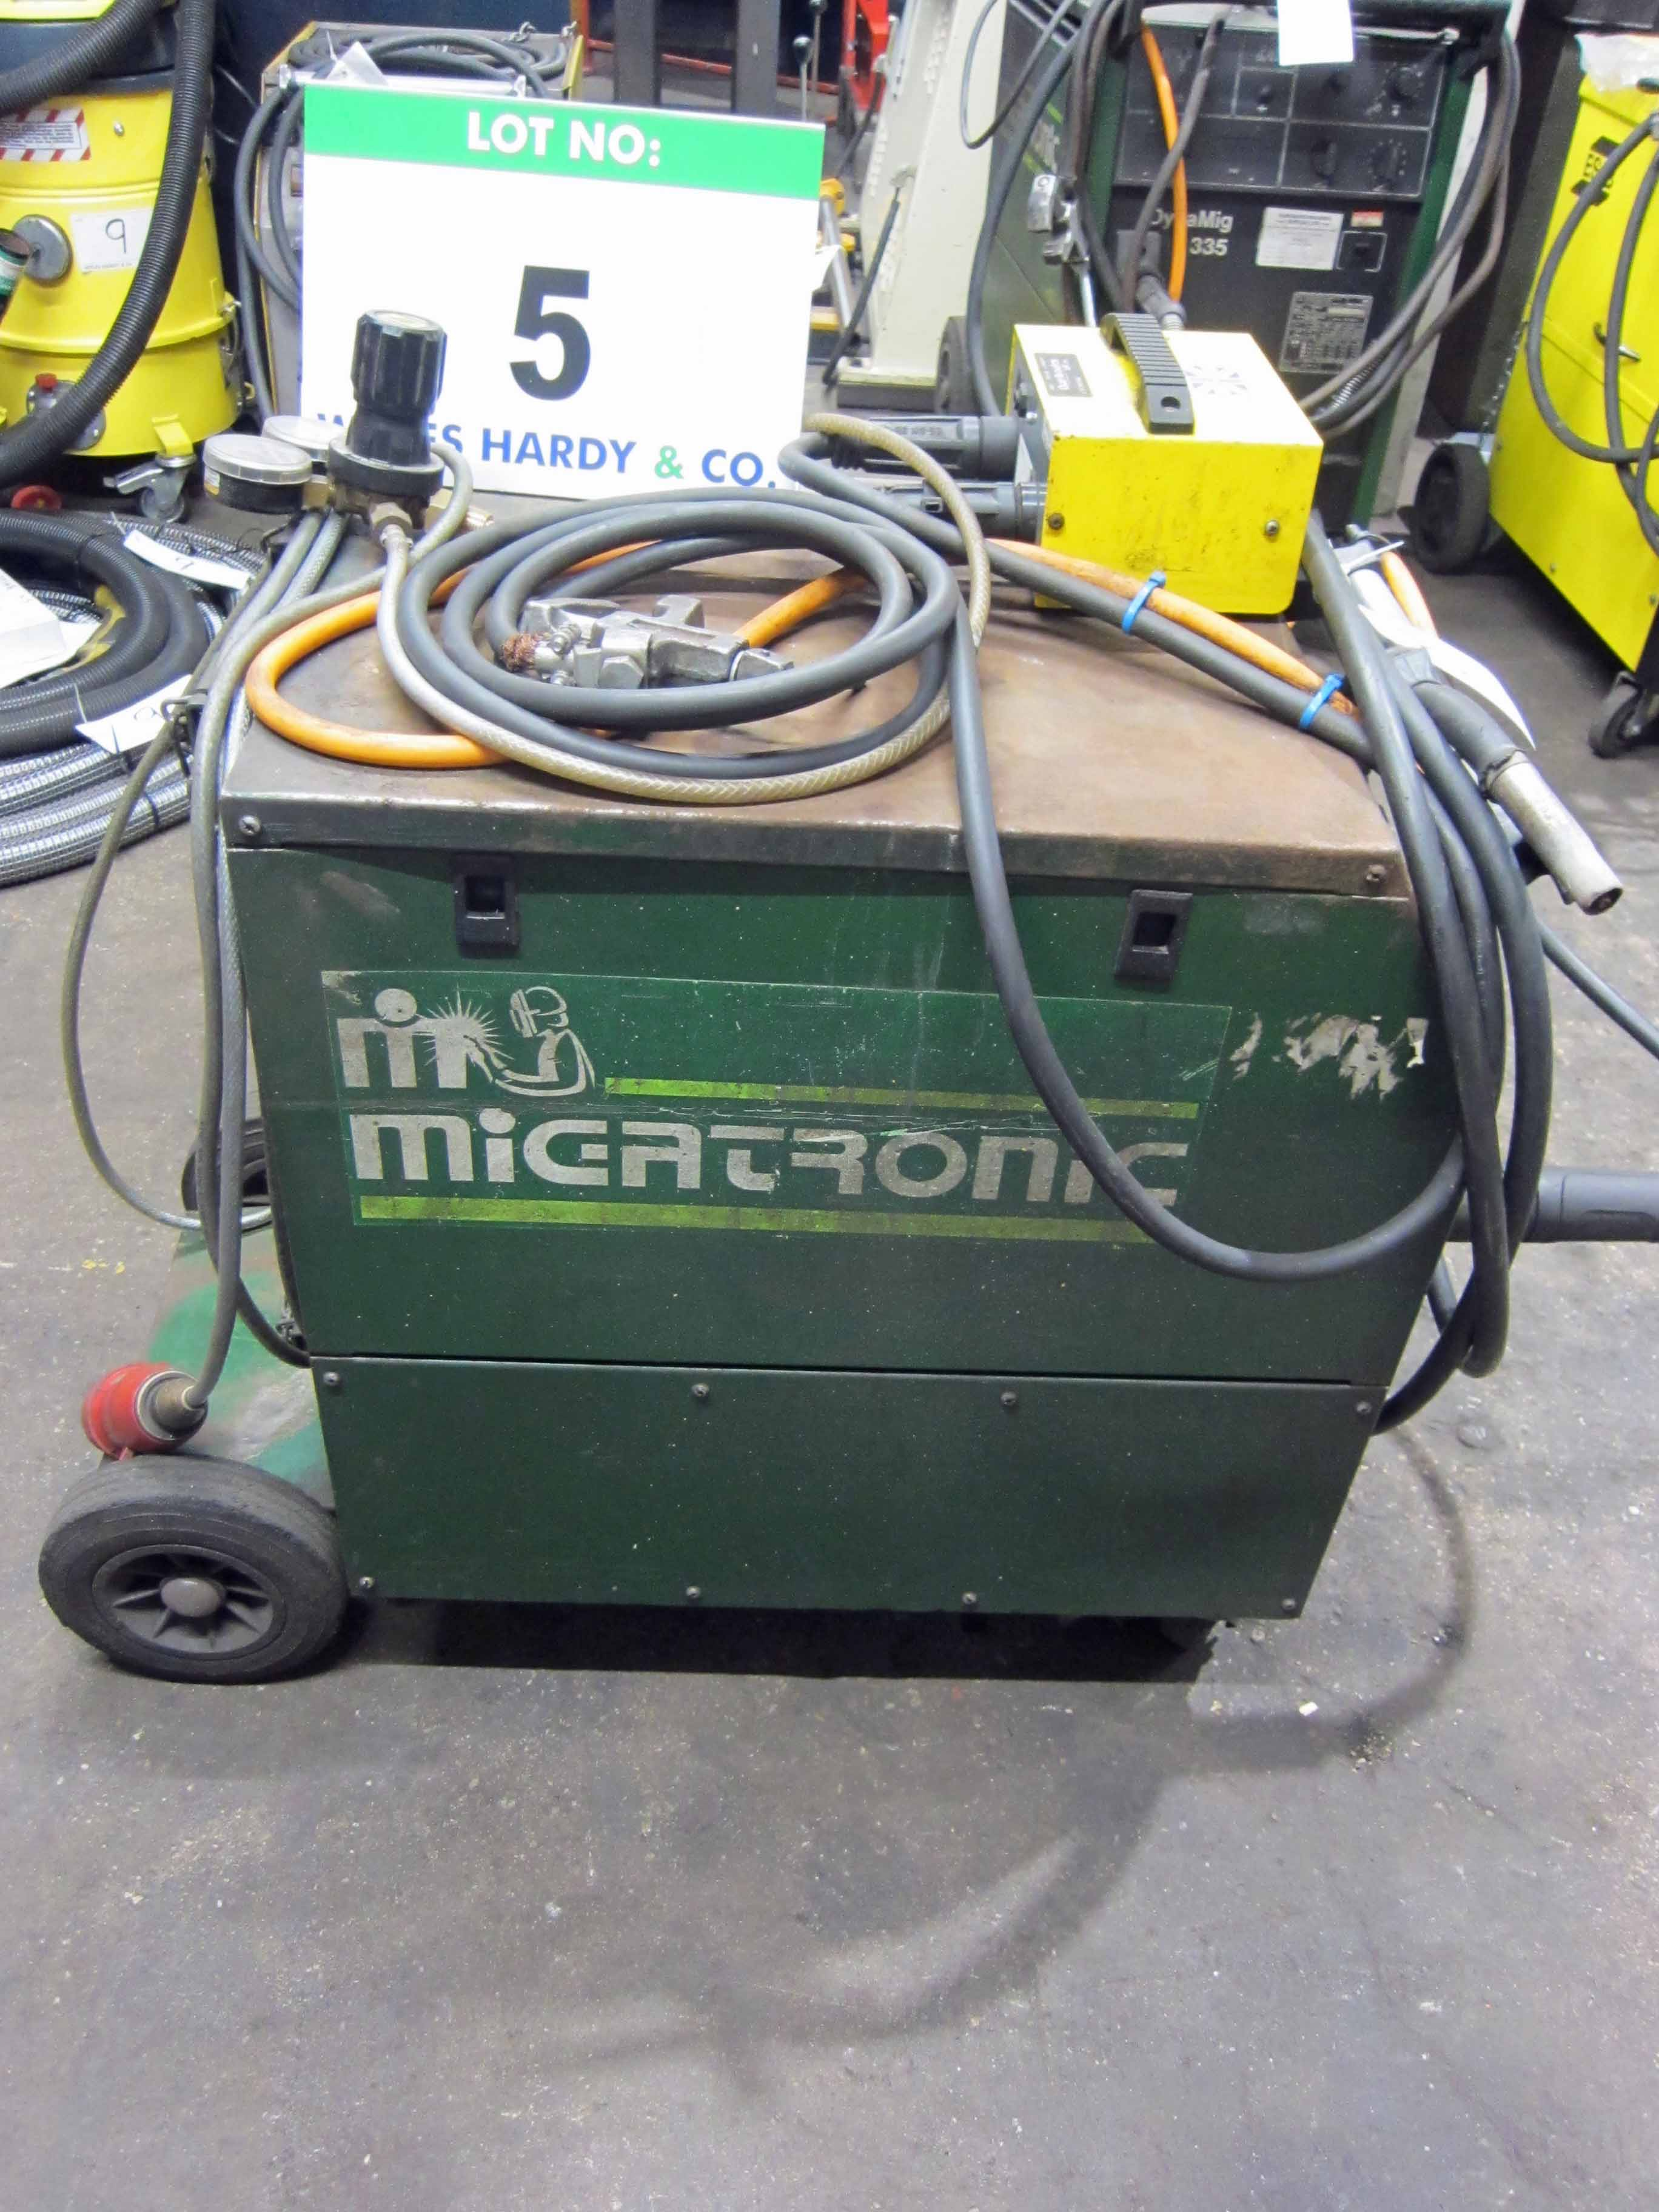 A MIGTRONIC Model Mig 300 Mig Welder complete with QUALITRONICS Voltage and Amp Meters and Gun, - Image 2 of 6